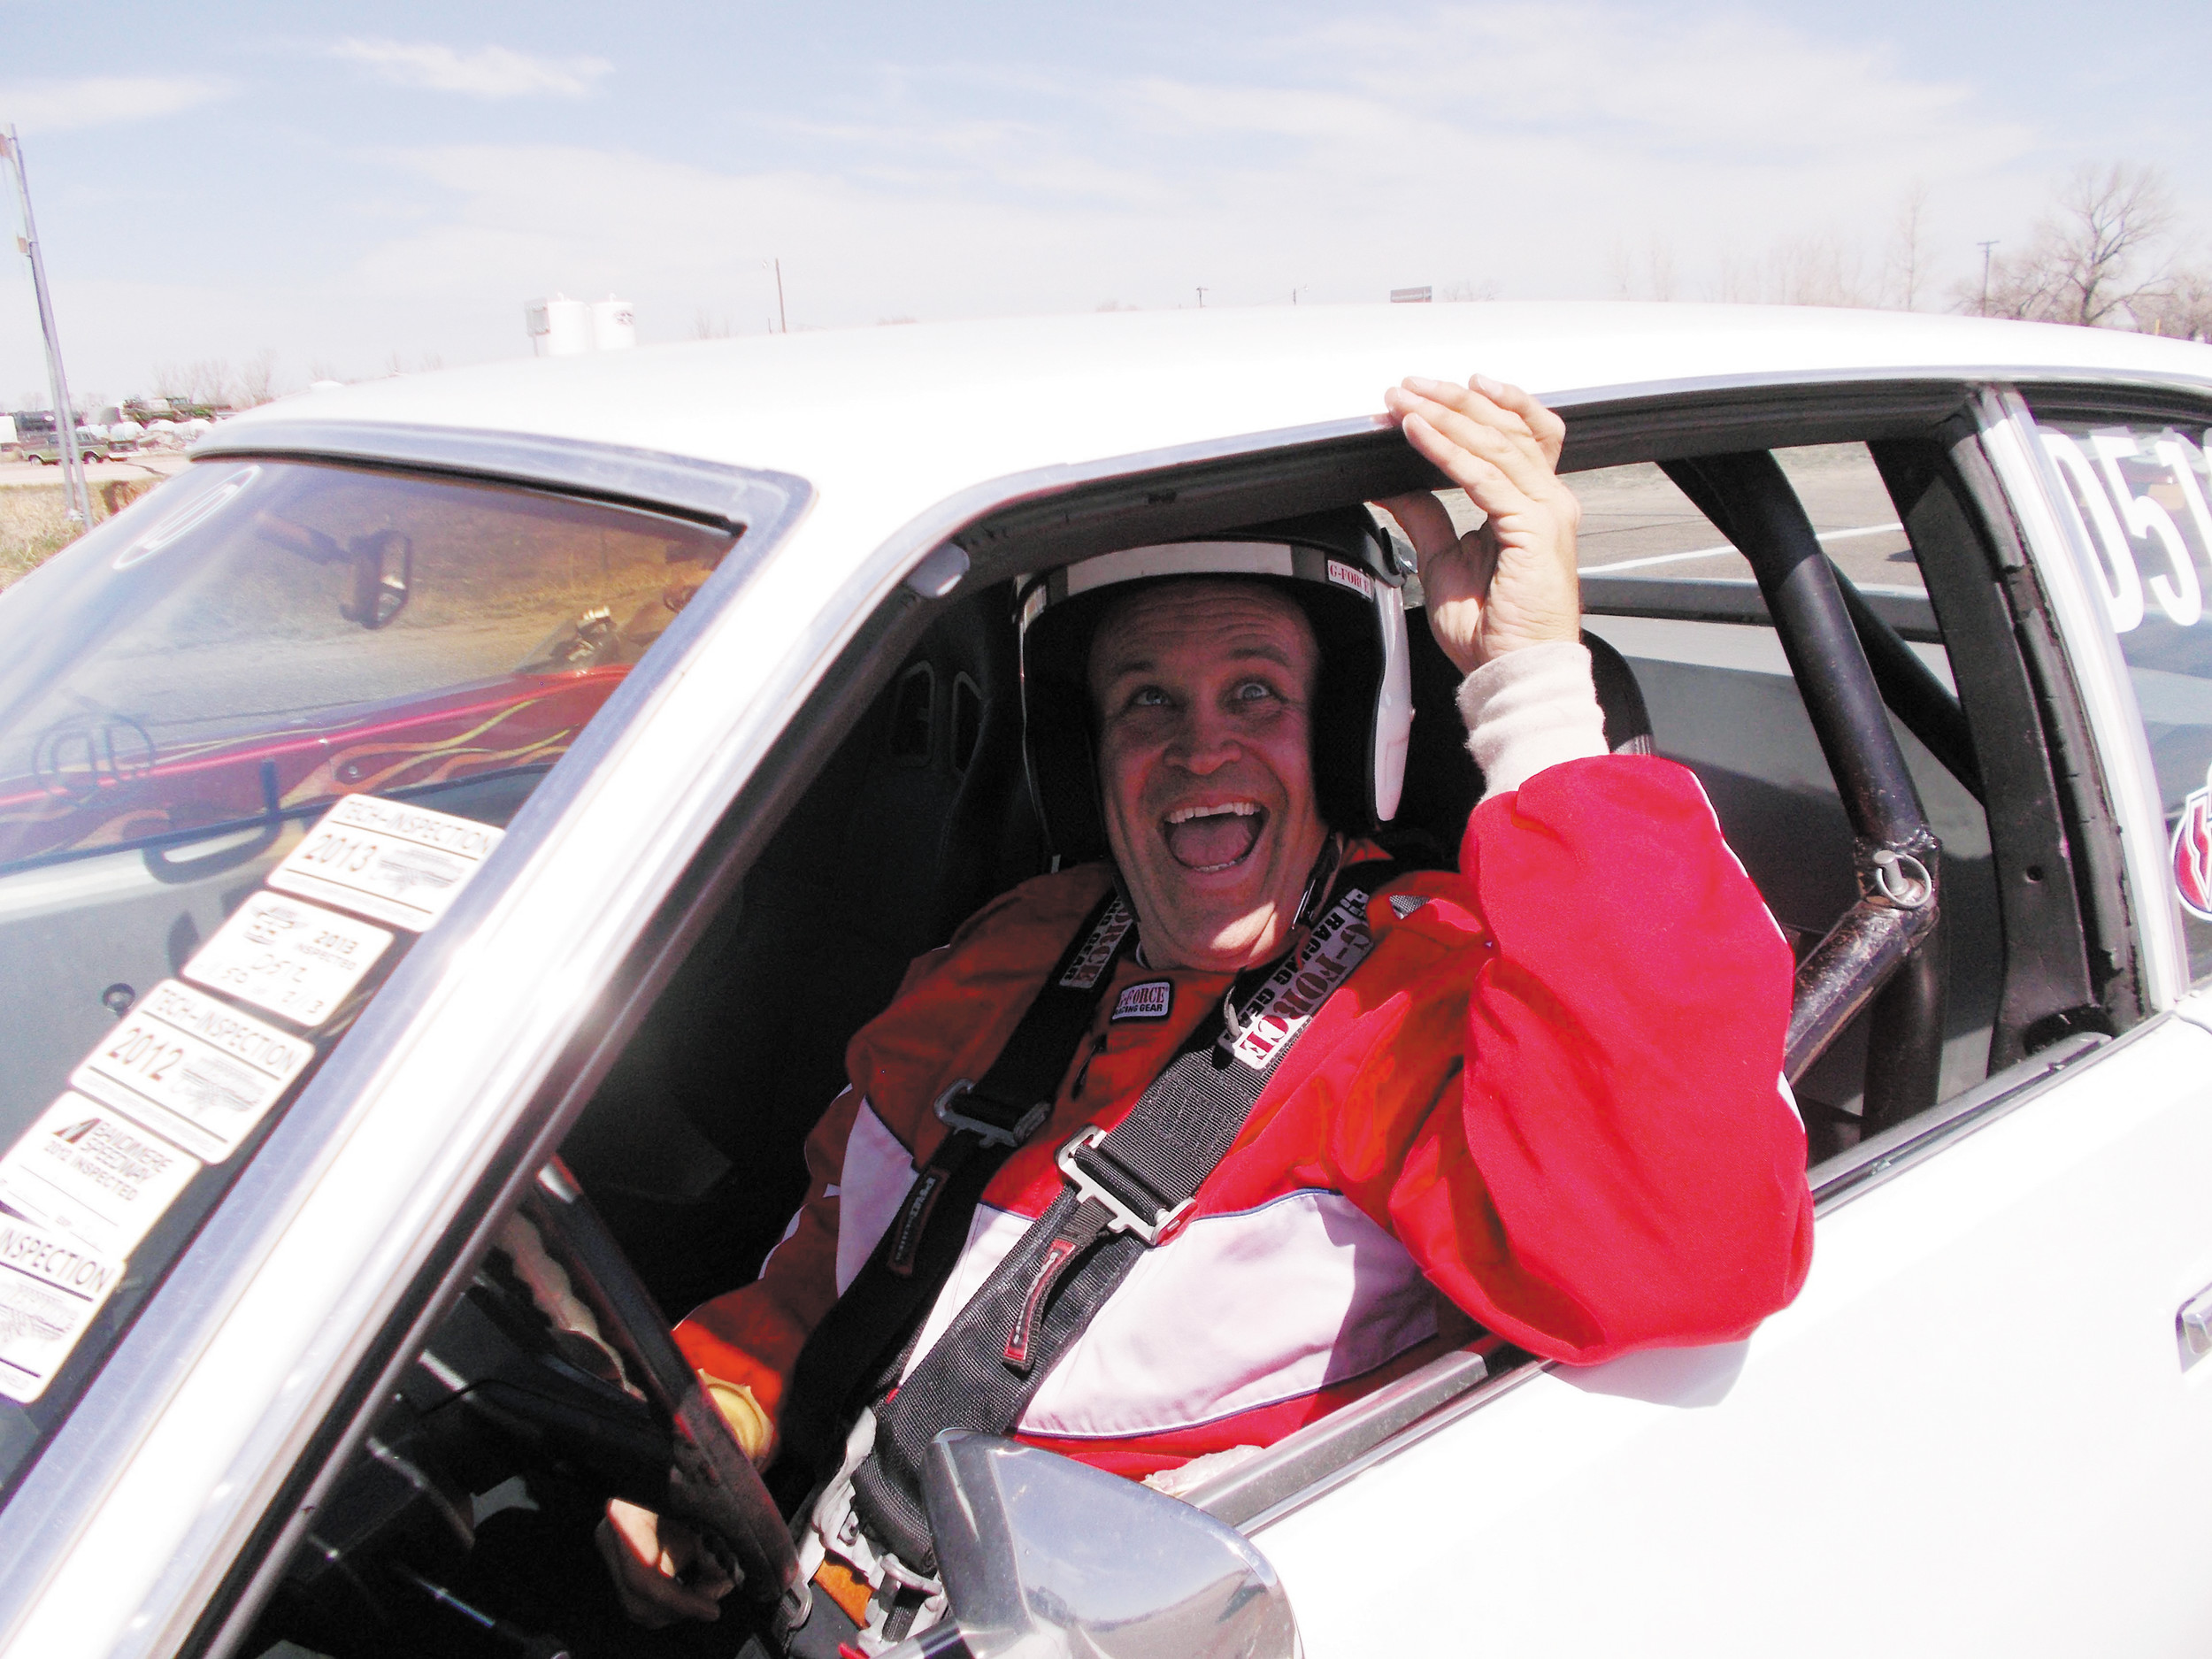 John Muhr has been racing for 29 years. He has won several events over the years, including the Brackett Nationals and a 2012 Chevy Cup race at Bandimere.